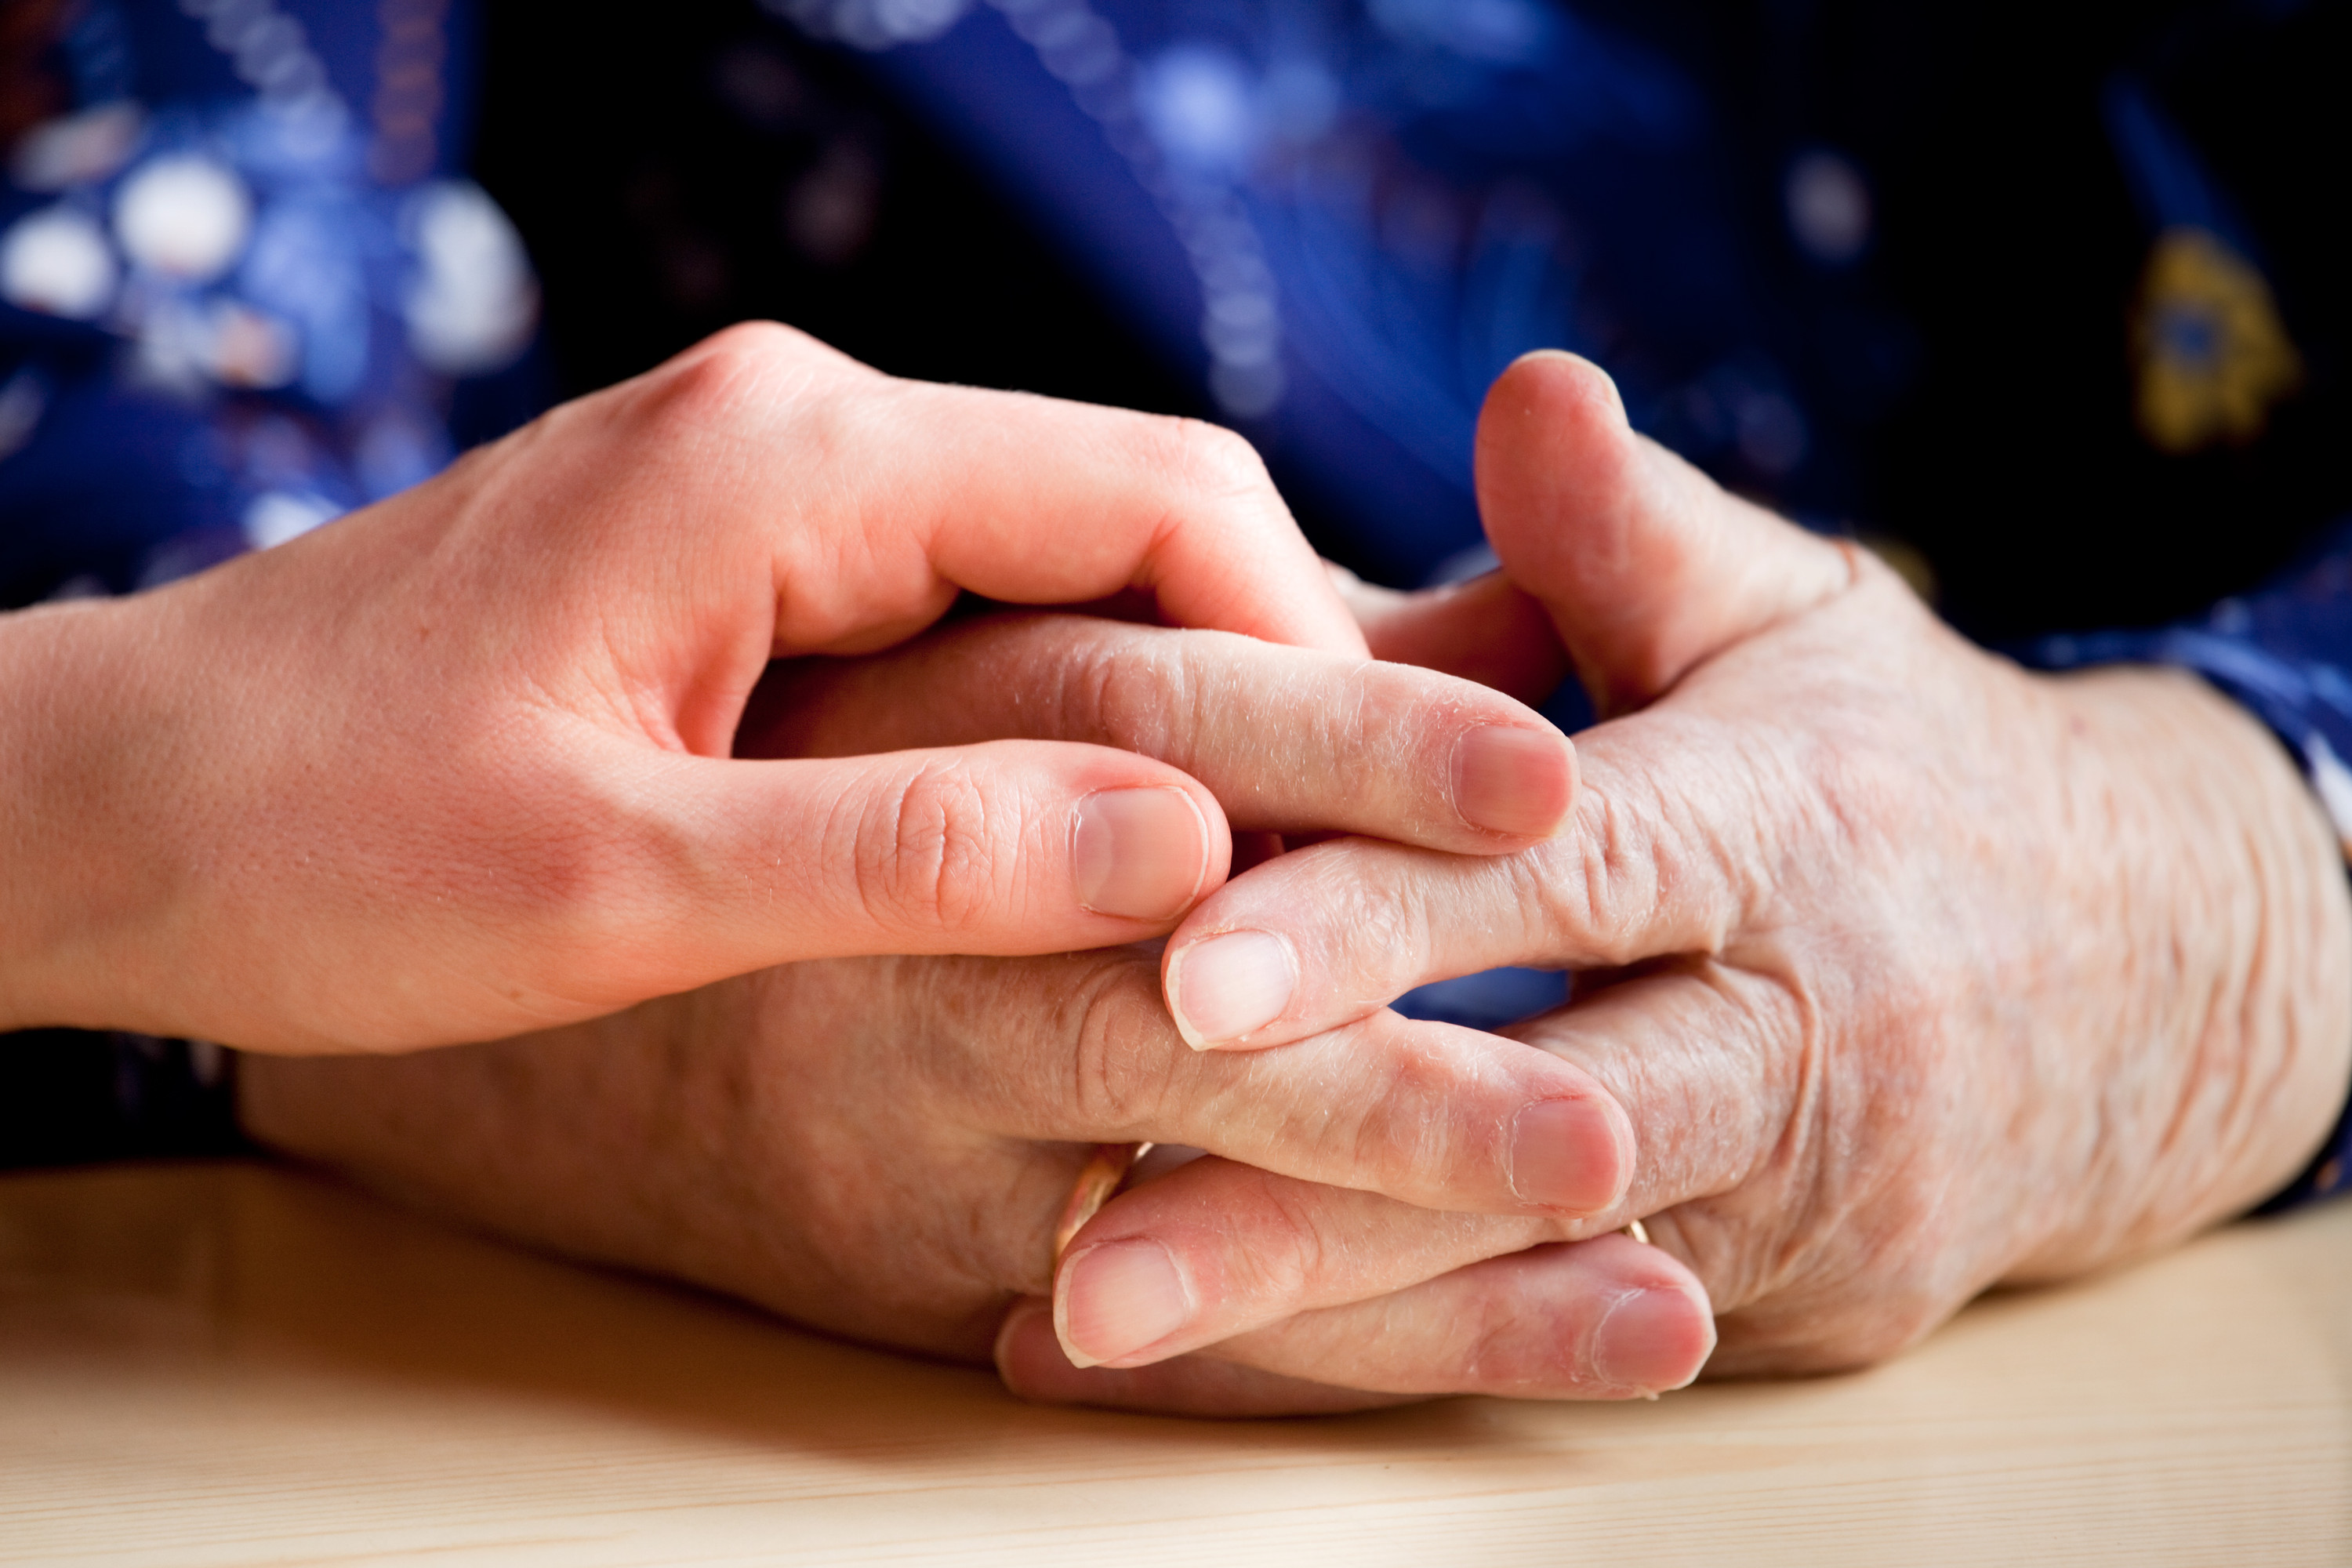 Hanover Hospital To Offer Medical Assistance In Dying